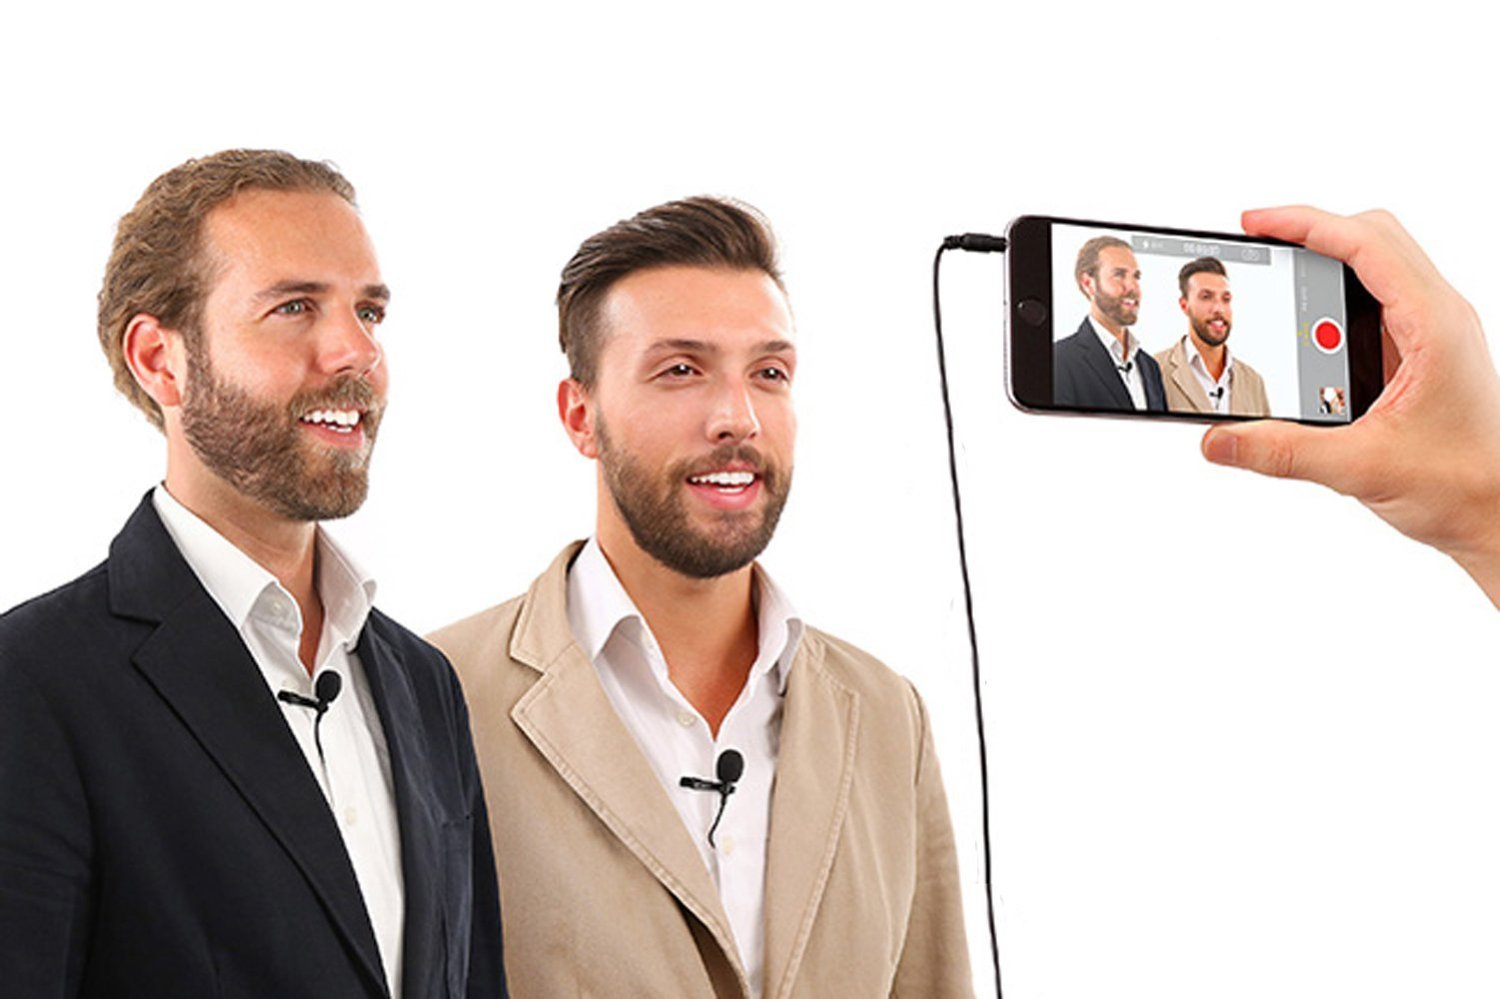 """Premium 196"""" Dual-head Lavalier Microphone, Professional Lapel Clip-on Omnidirectional Condenser Mic For Apple IPhone,Android,PC,DSLR,Recording Youtube,Interview,Video Conference,Podcast - FREE BONUS"""